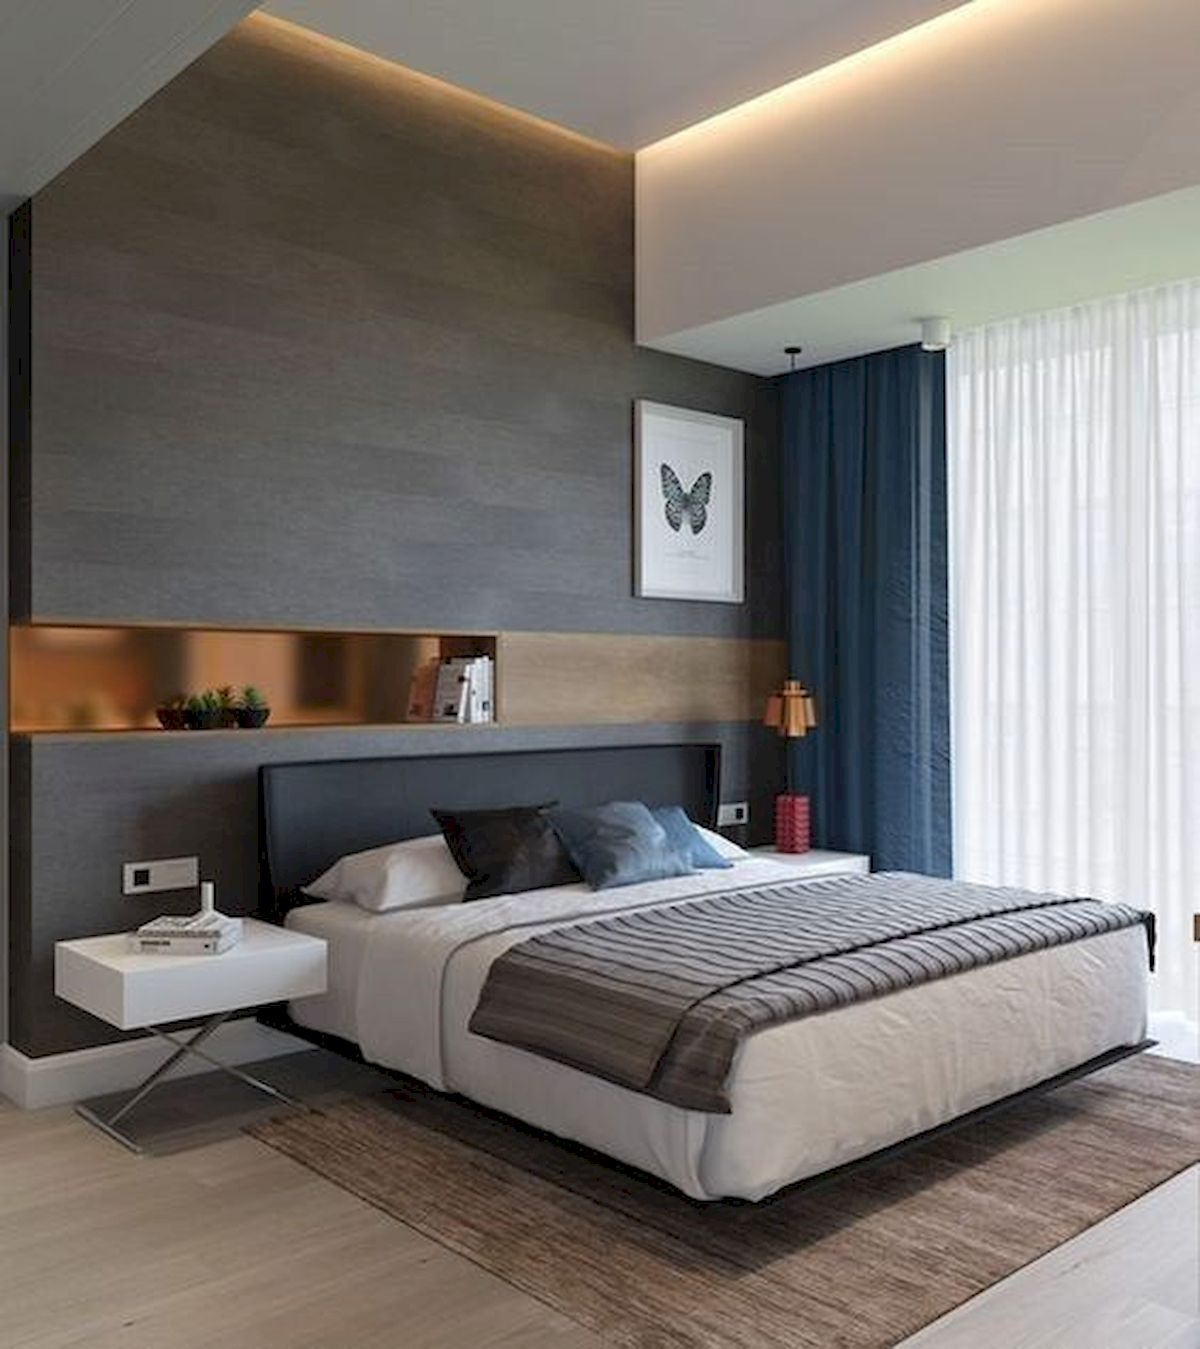 40 Incredible Modern Bedroom Design Ideas That Will Be Relax Place (9)